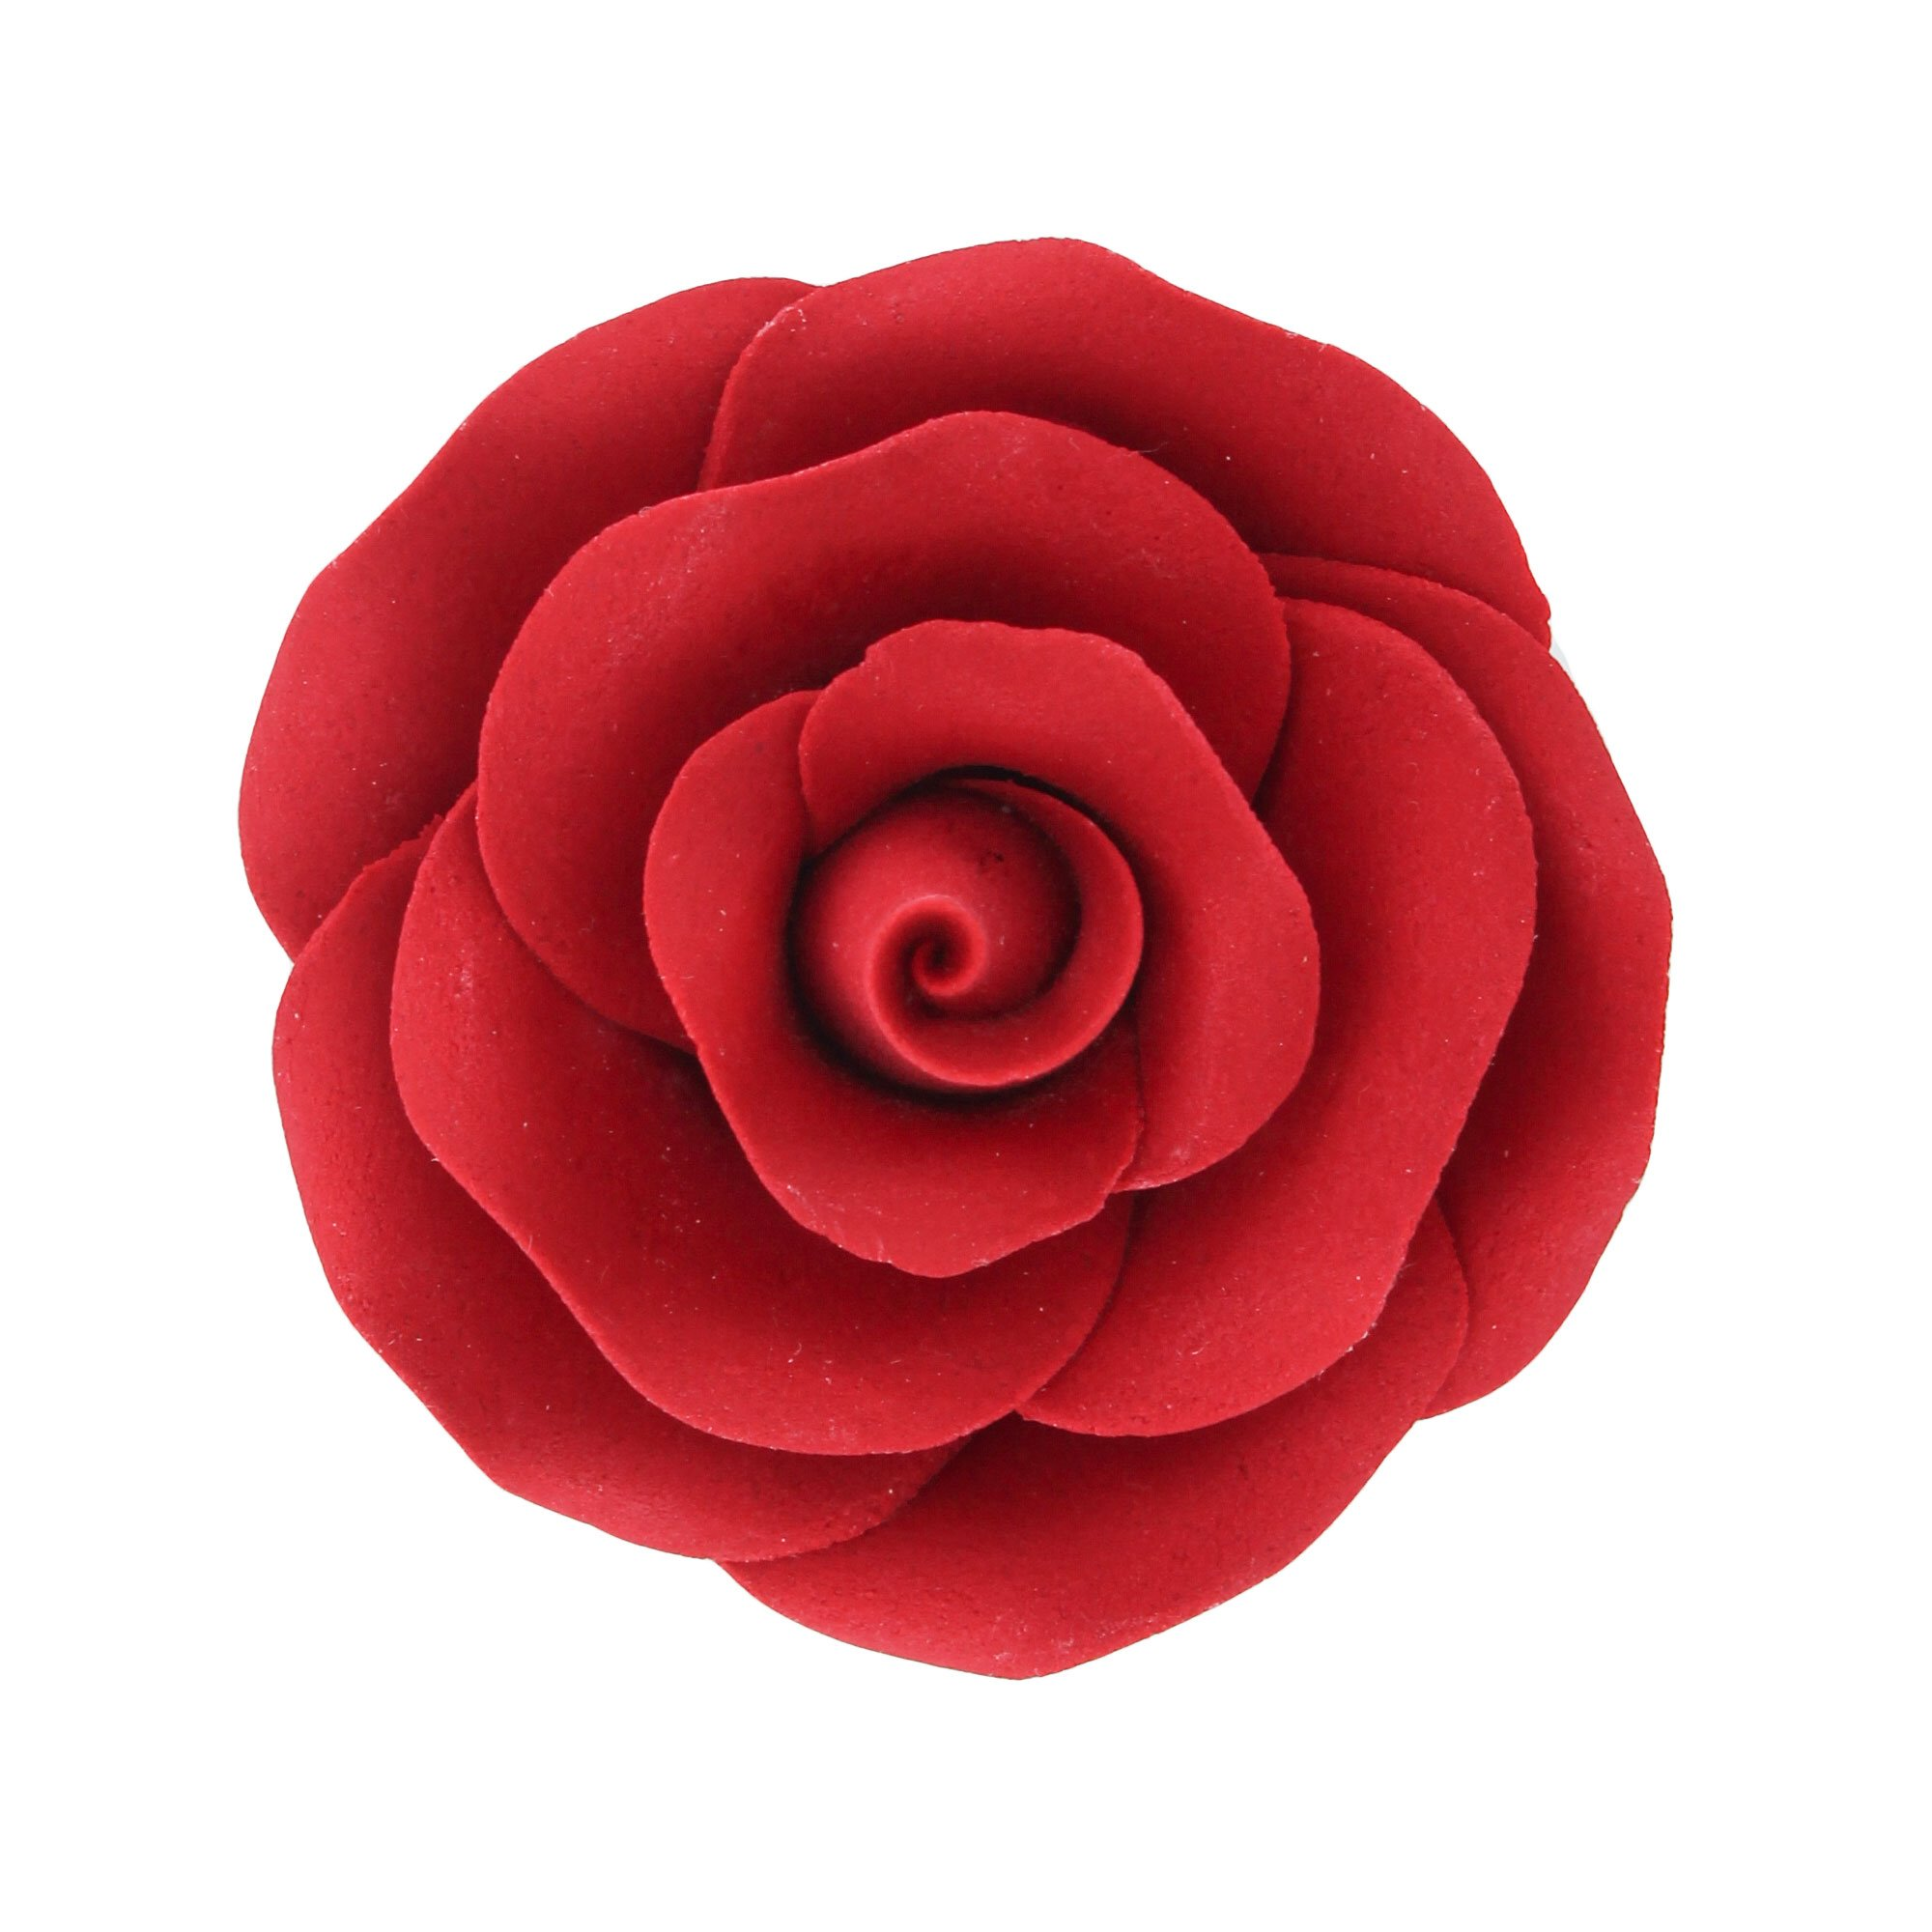 Rose Premium Red, Unwired, Large 12 Count by Chef Alan Tetreault by ALAN TETREAULT SELECT PRODUCTS (Image #2)